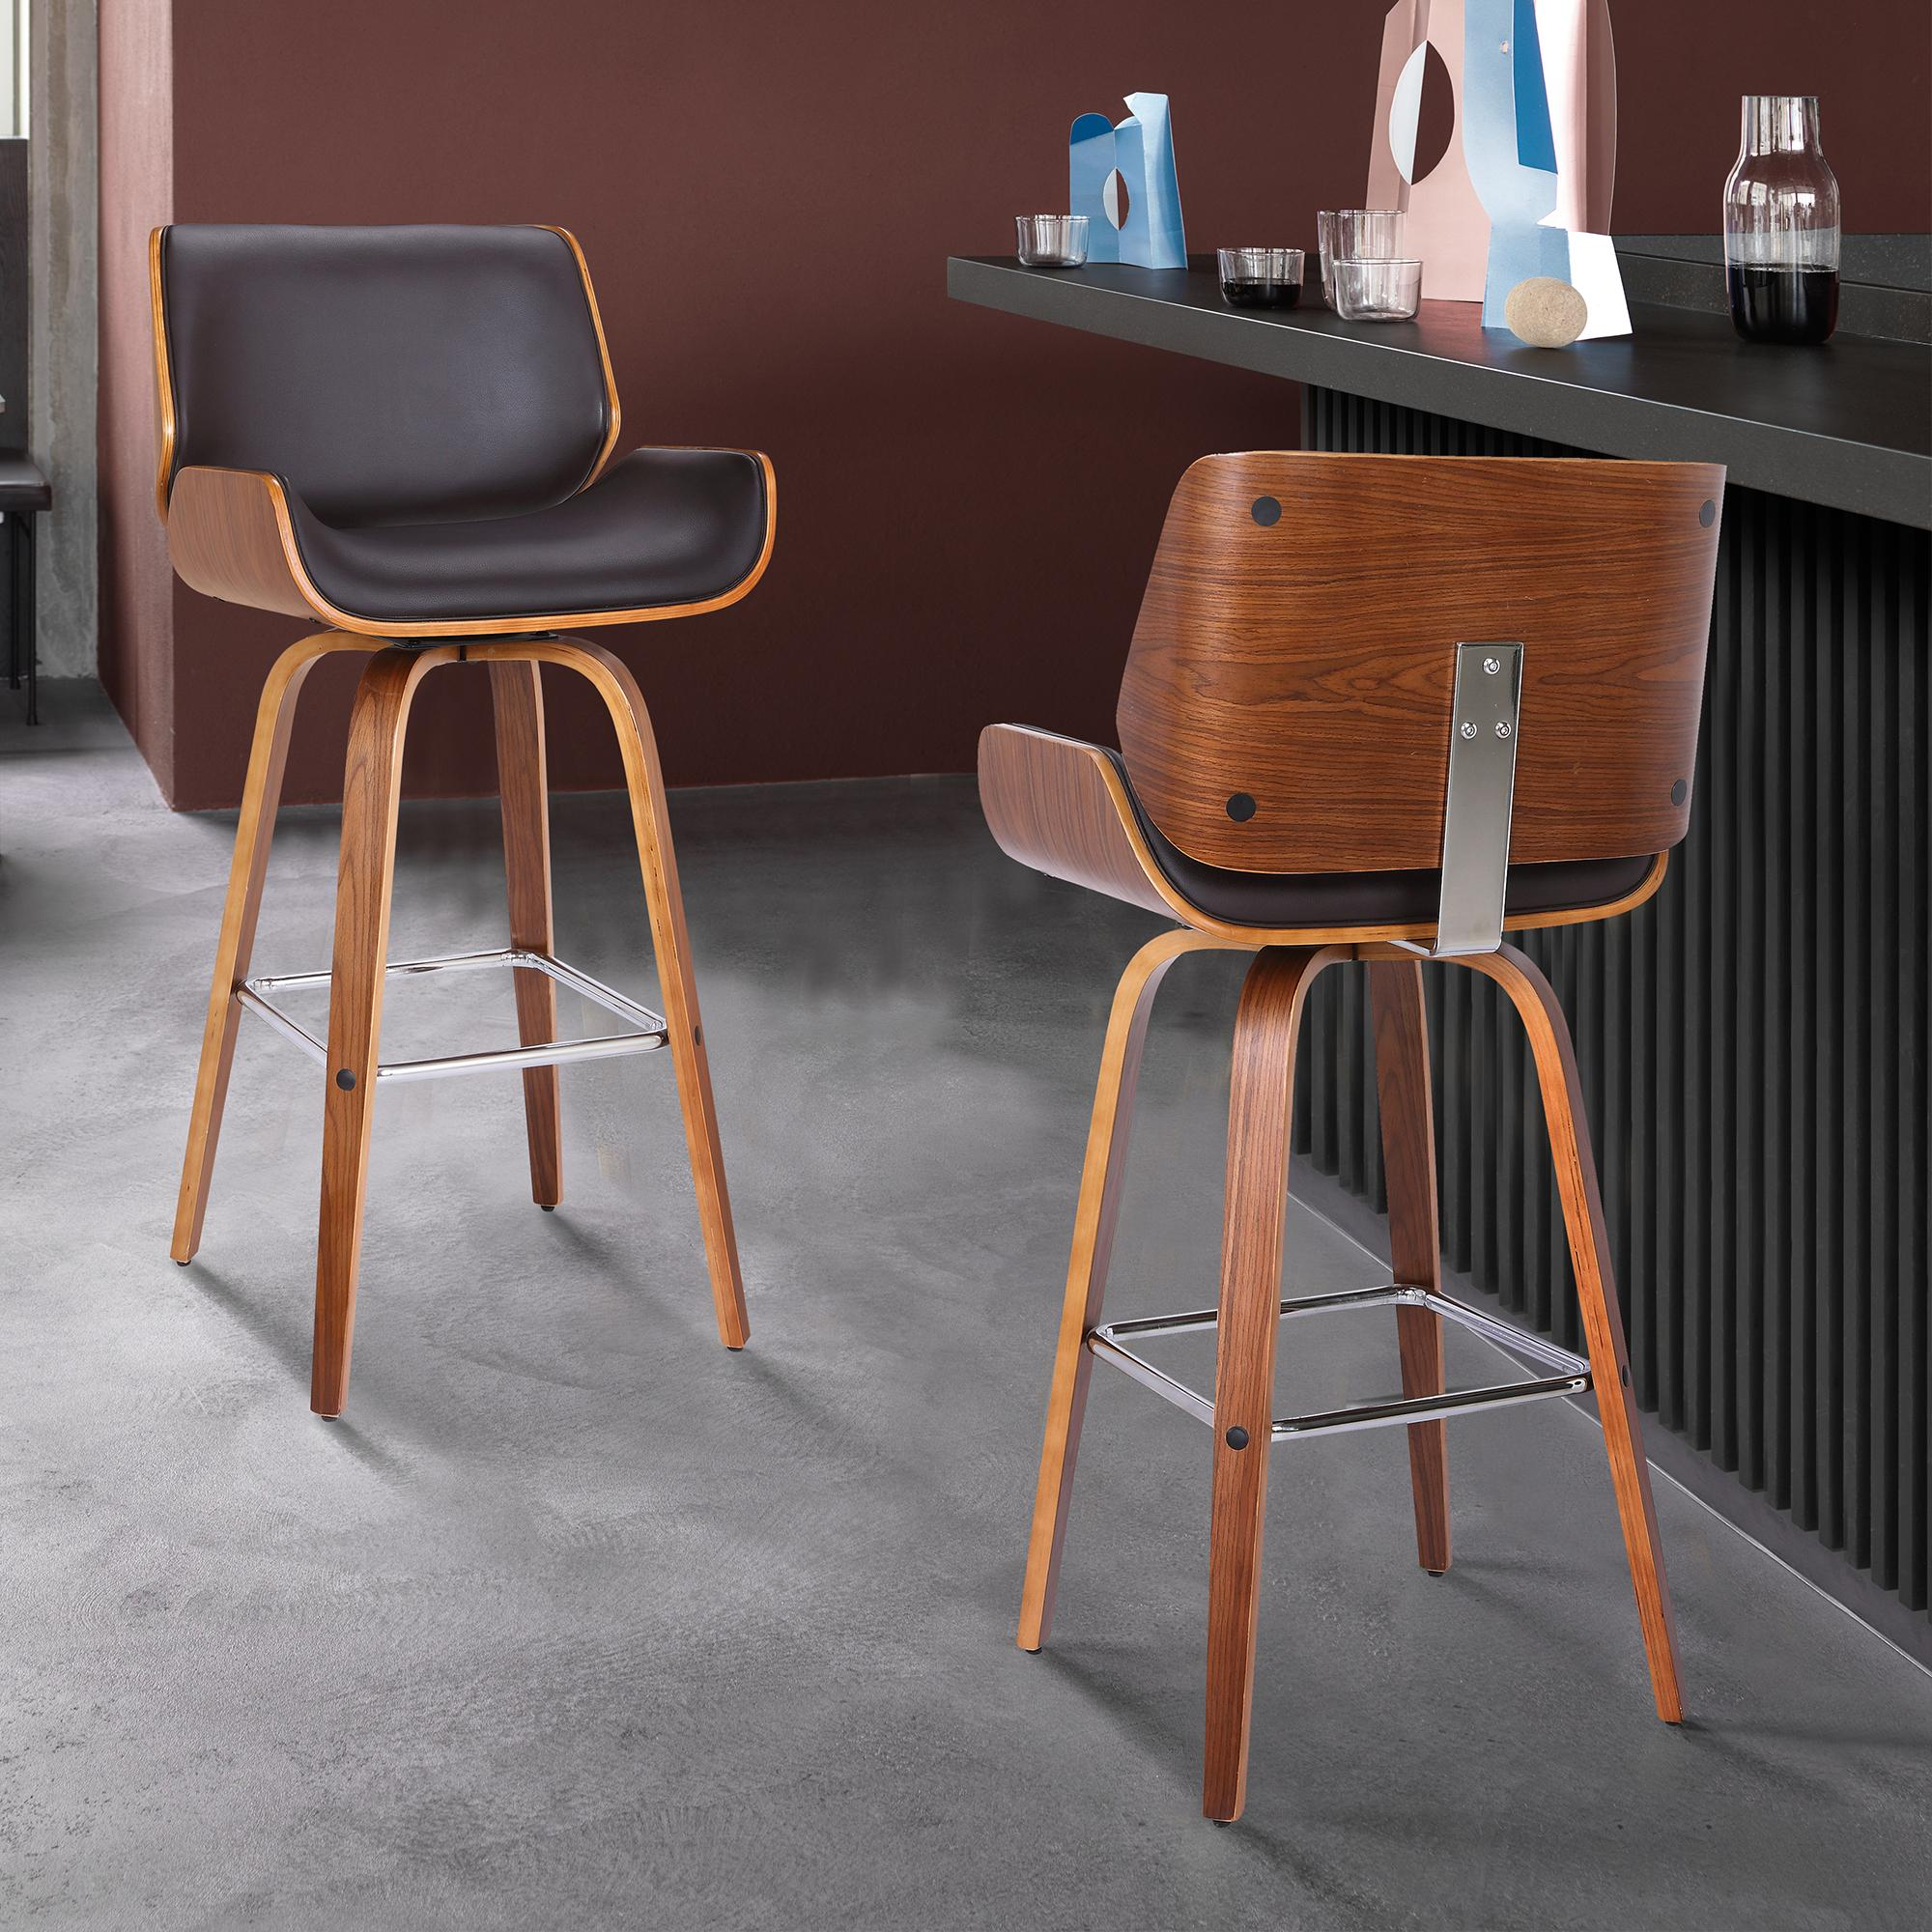 Armen Living Tyler 26' Mid-Century Swivel Counter Height Barstool in Brown Faux Leather with Walnut Veneer